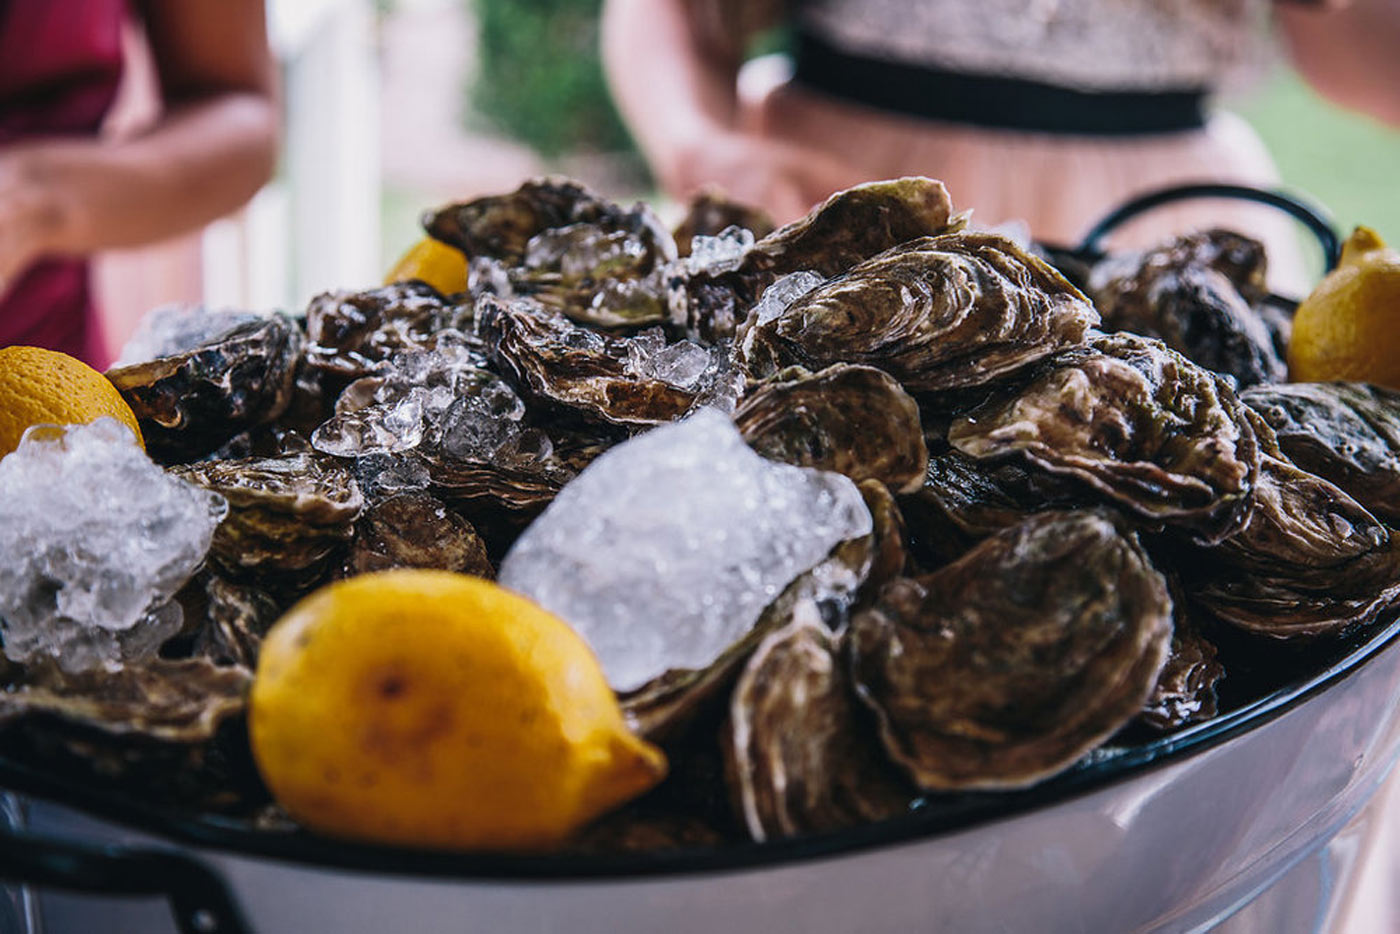 oysters luxury wedding food trends